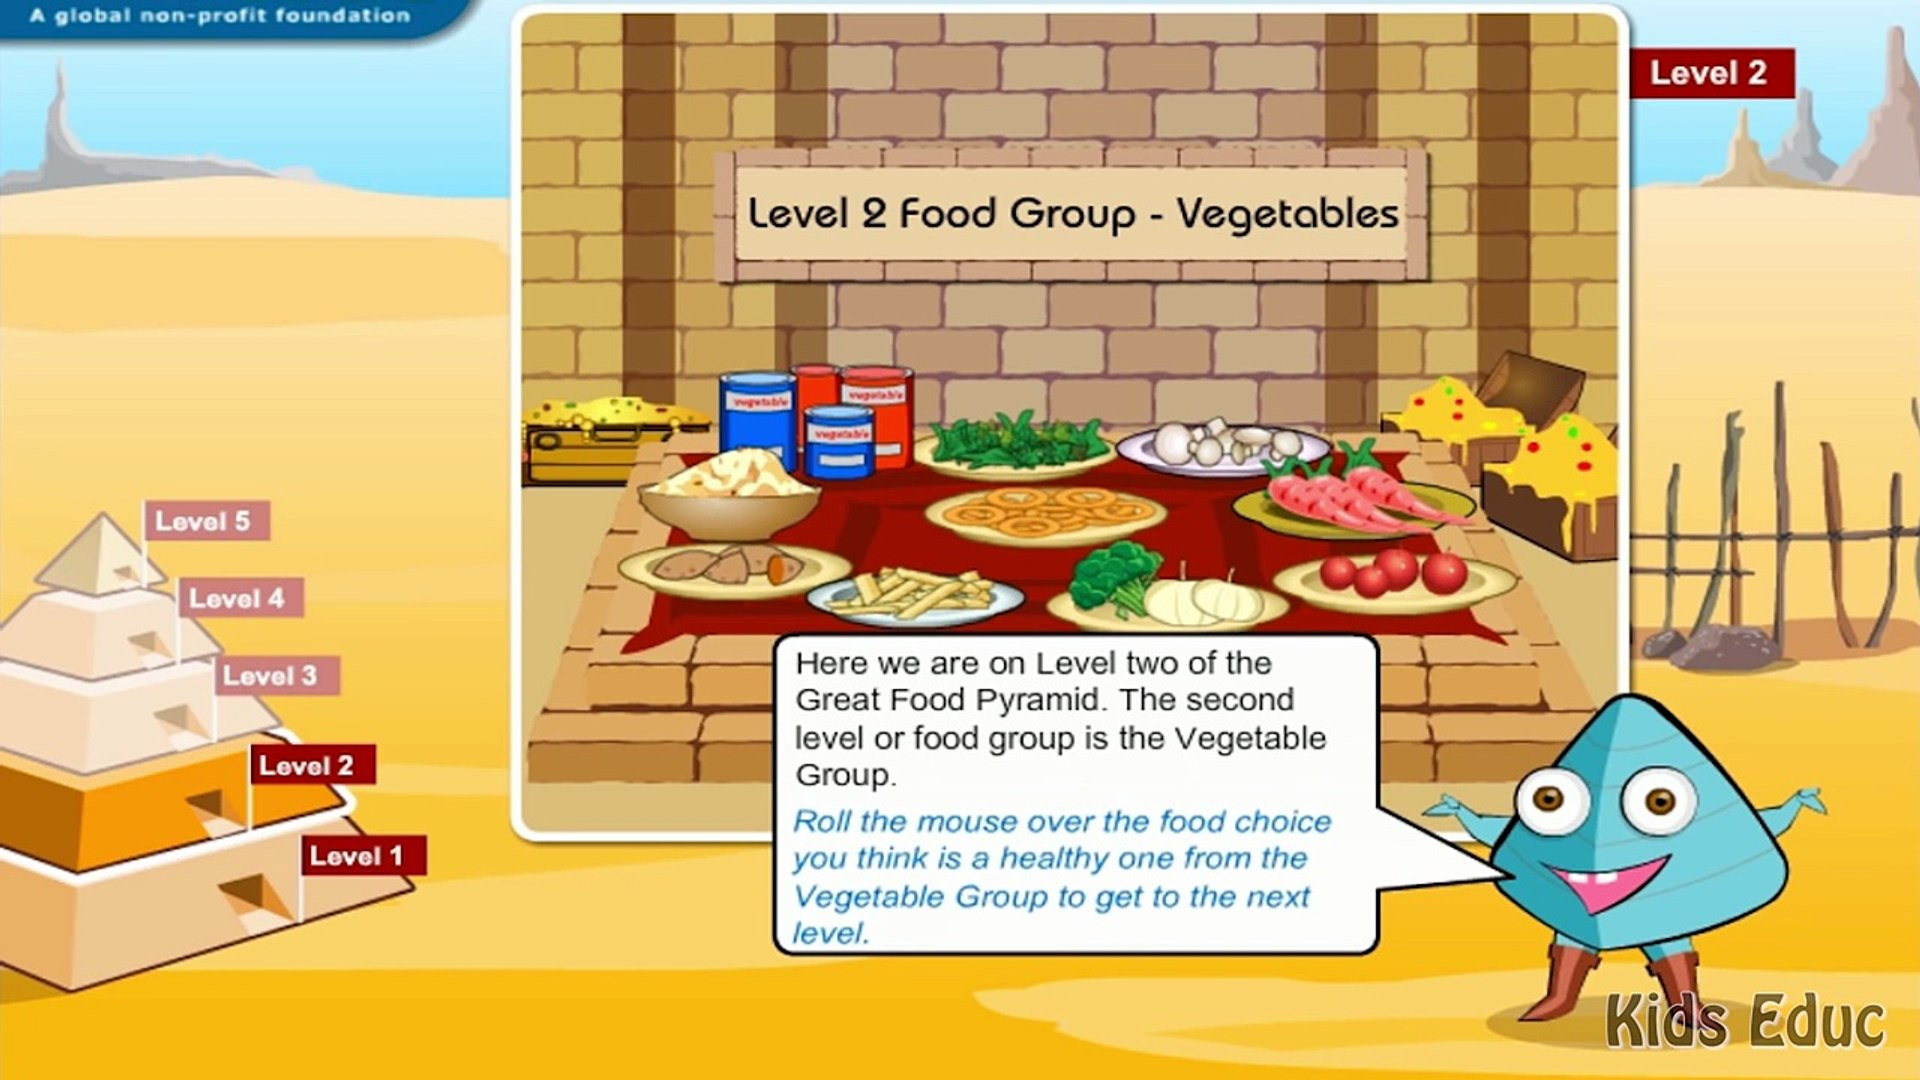 Food Pyramid The 5 Different Food Groups Learn The Healthy Unhealthy Foods Video For Dailymotion Video